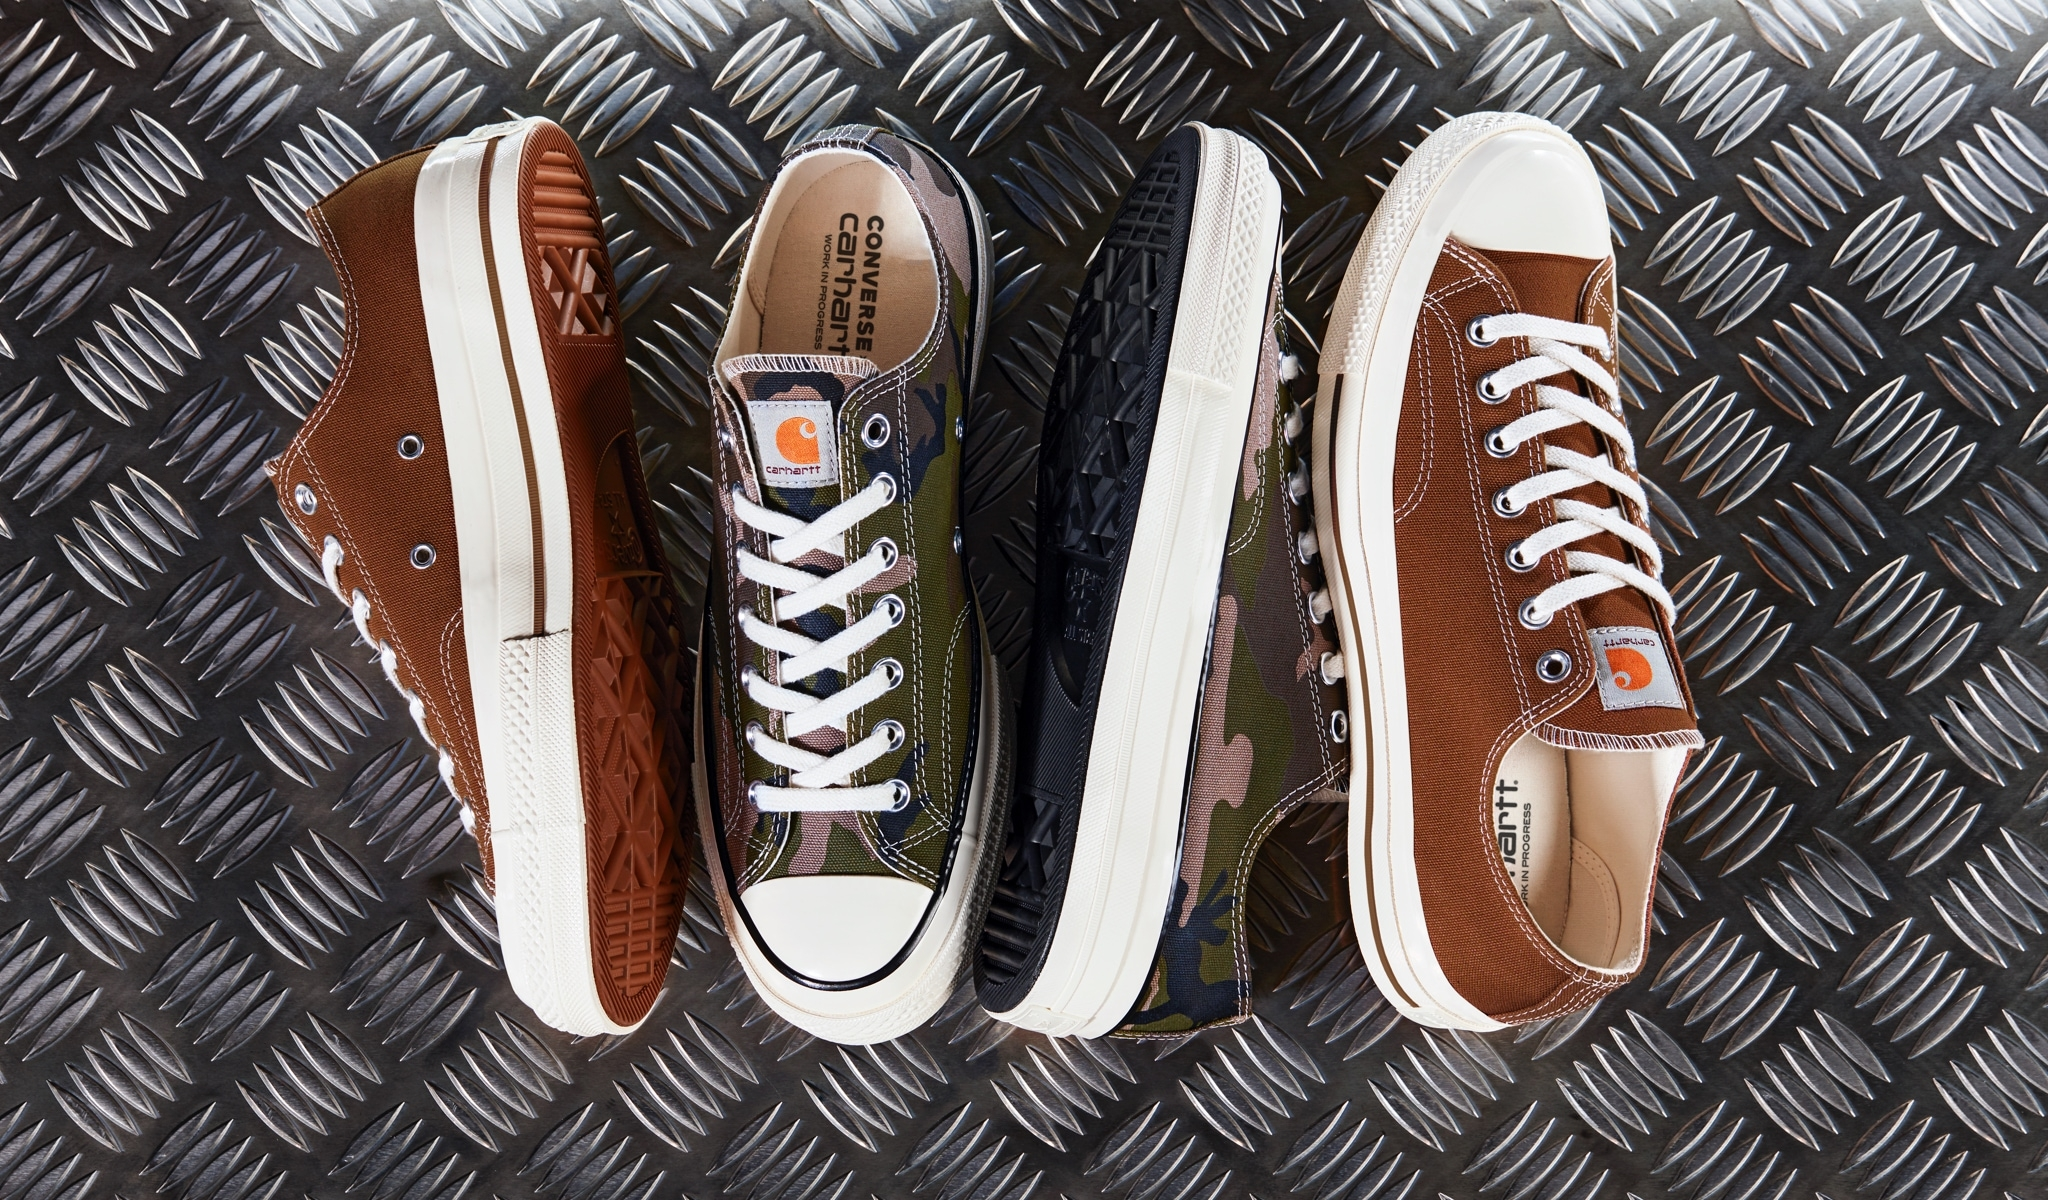 Carhartt WIP Converse for Carhartt WIP Stores Exclusive